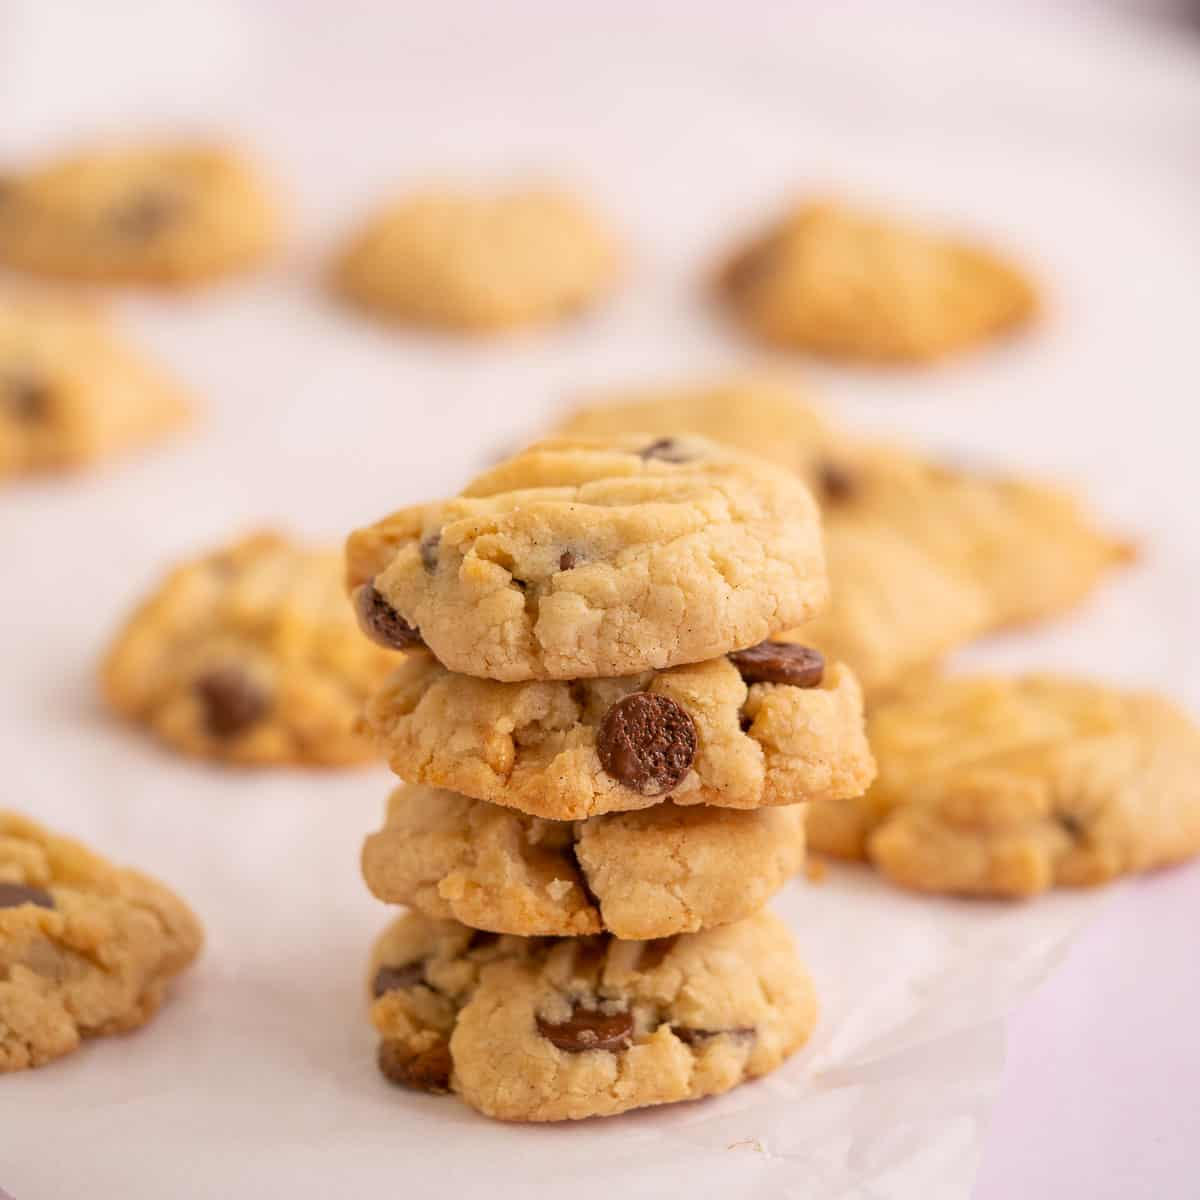 4 gluten free vegan chocolate chip cookies stacked in a tower.